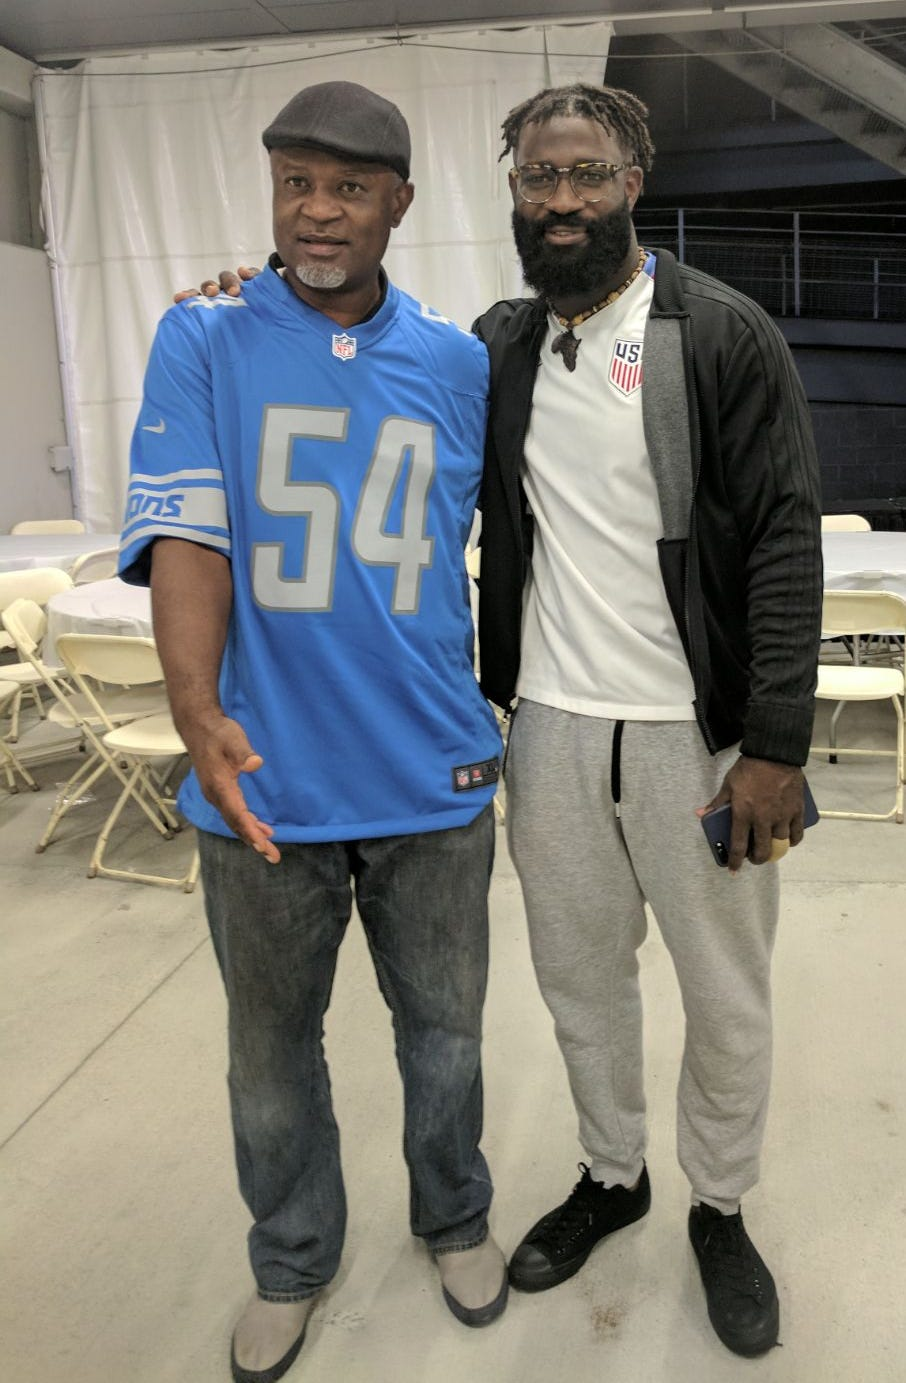 Lions linebacker Steve Longa, right, and his father.